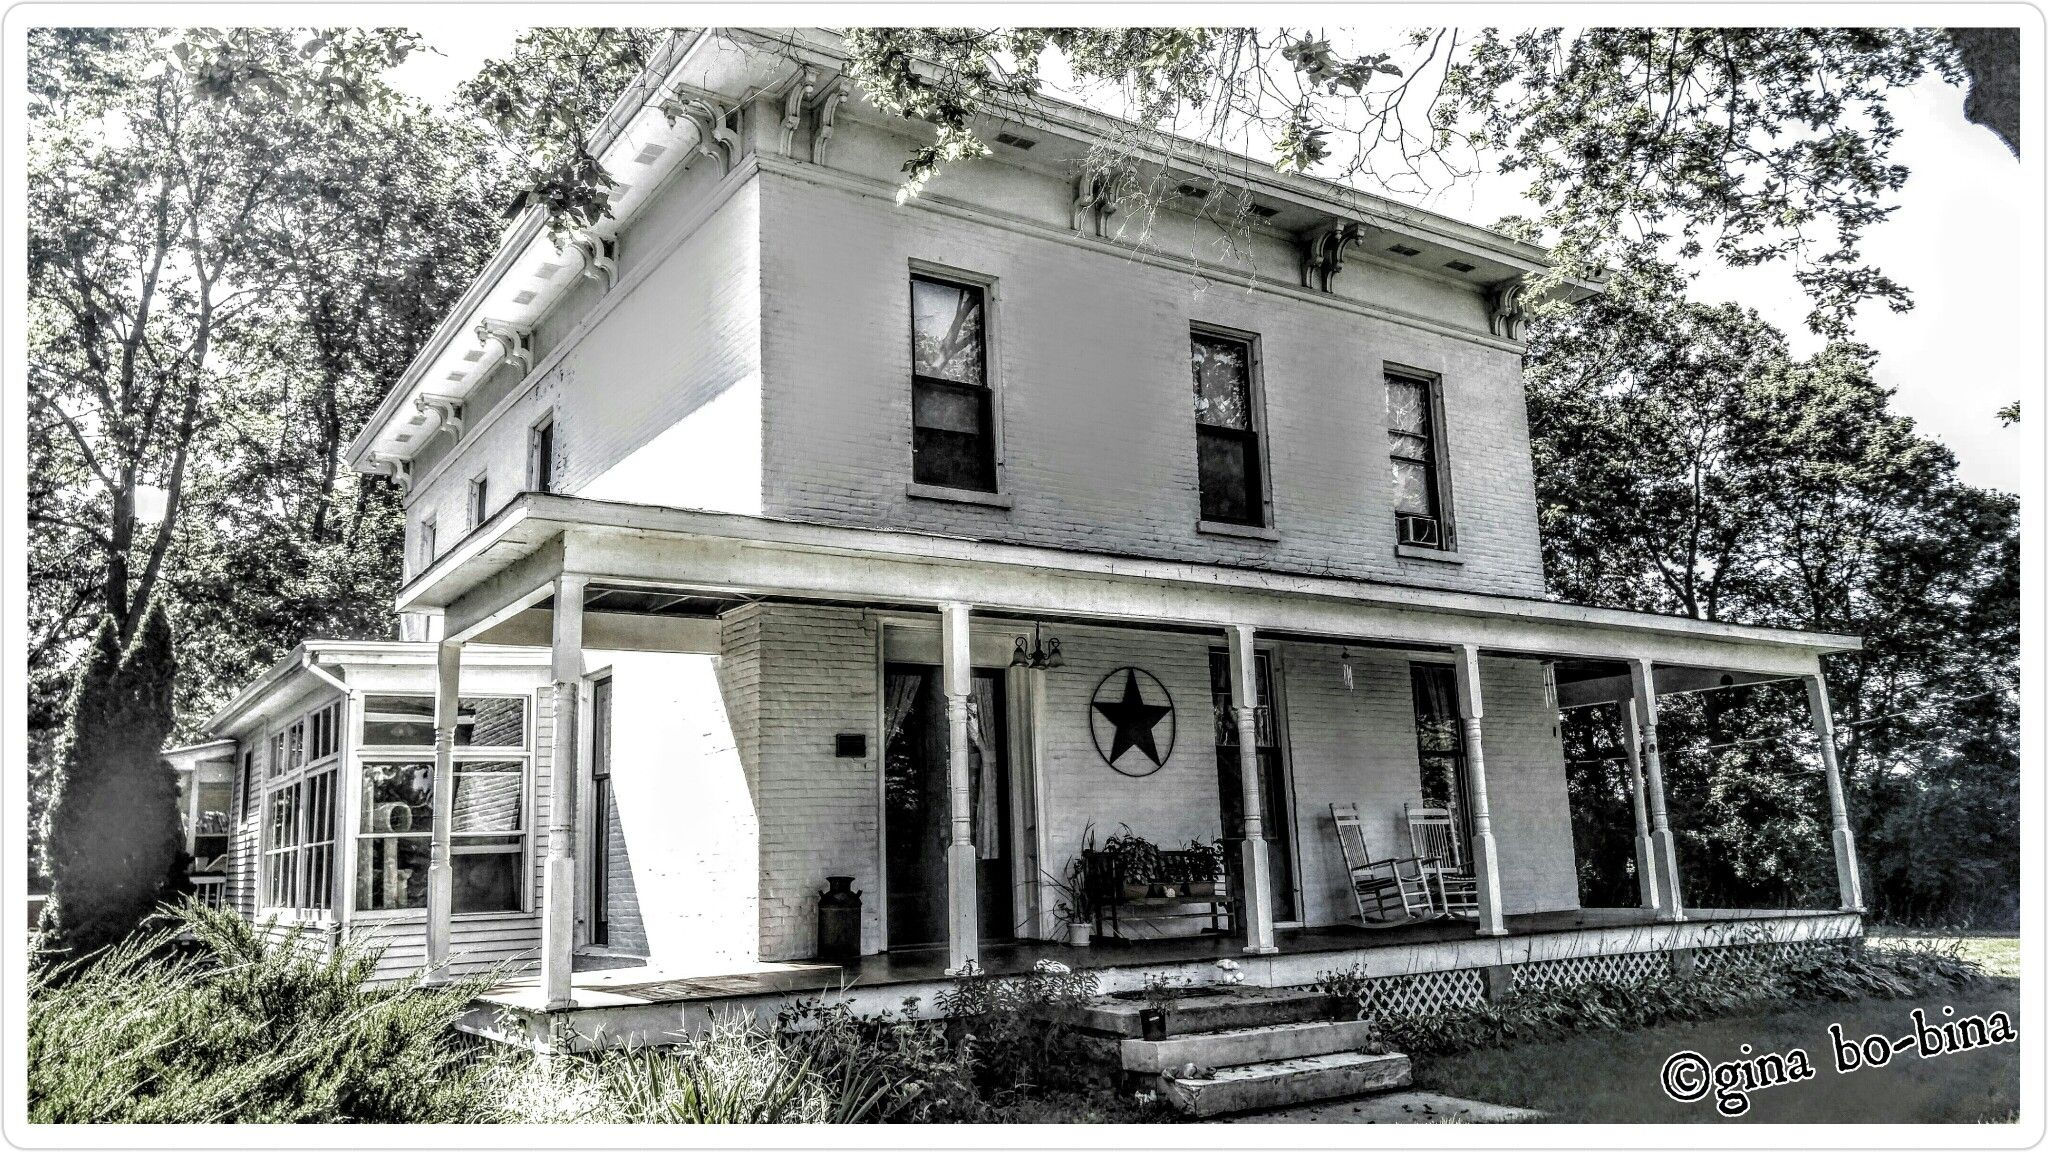 Pre Civil War House Widows Walk Is The Upper Room With The Windows It Oversees The River The Wives Would Wait In The Widows Mansions House Built Widows Walk